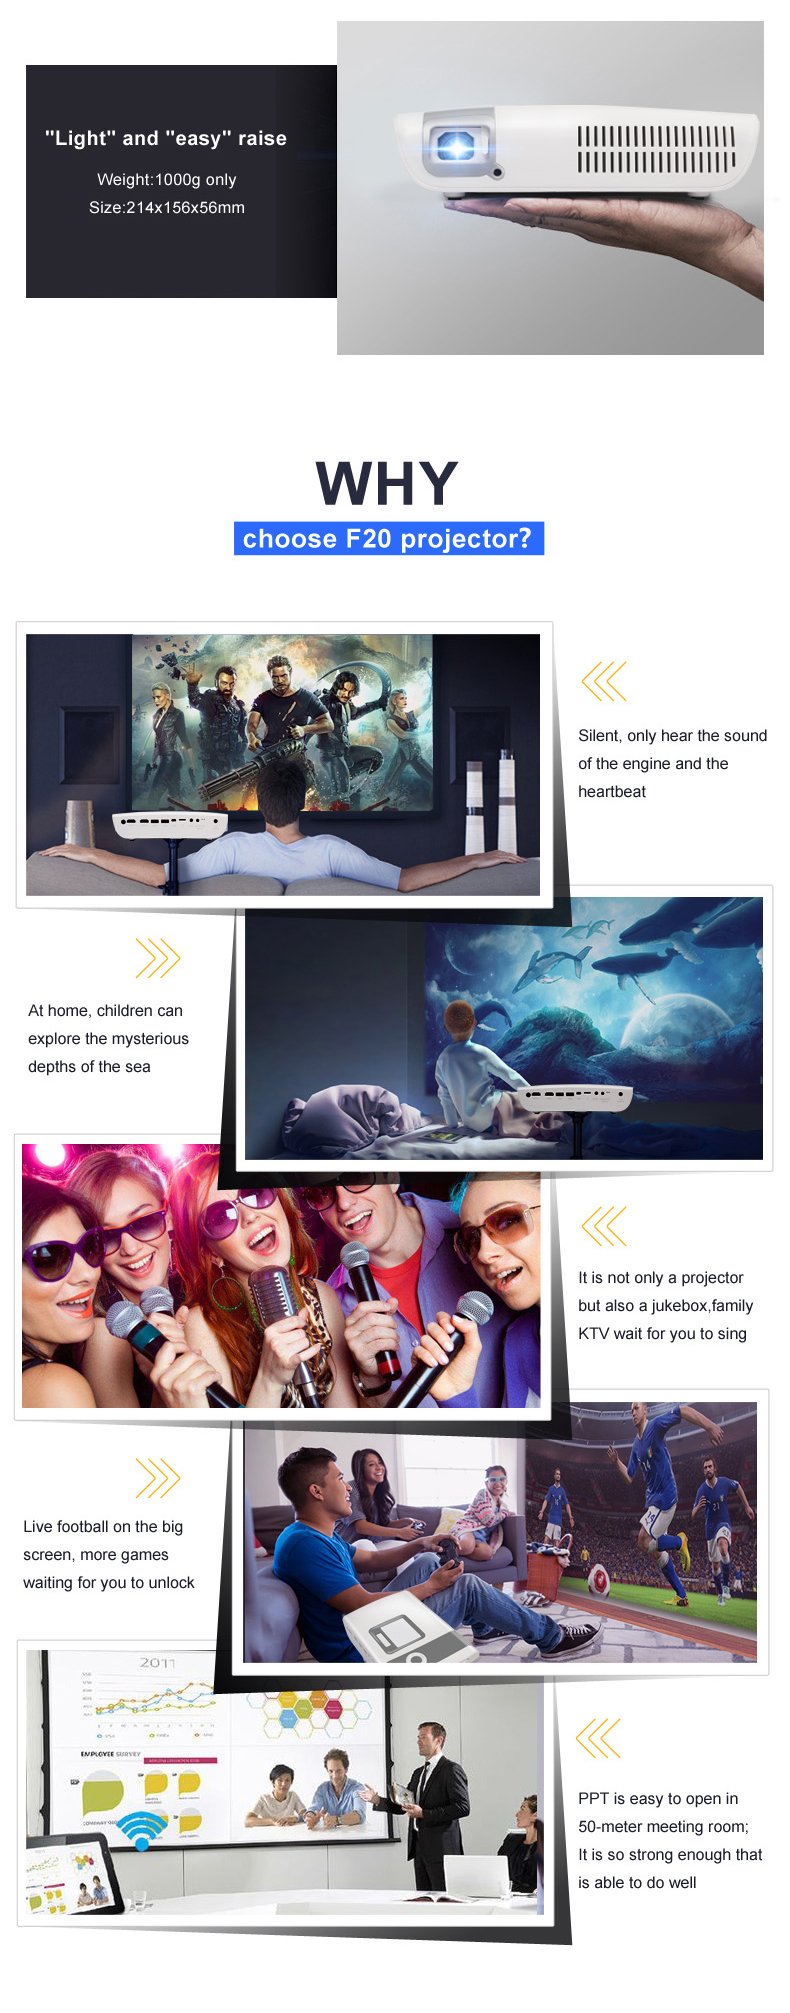 Touch Screen IWB Projectors MINI Full HD 1080p Intelligent Micro Projector LED Android WIFI Portable Projection DLP 4K